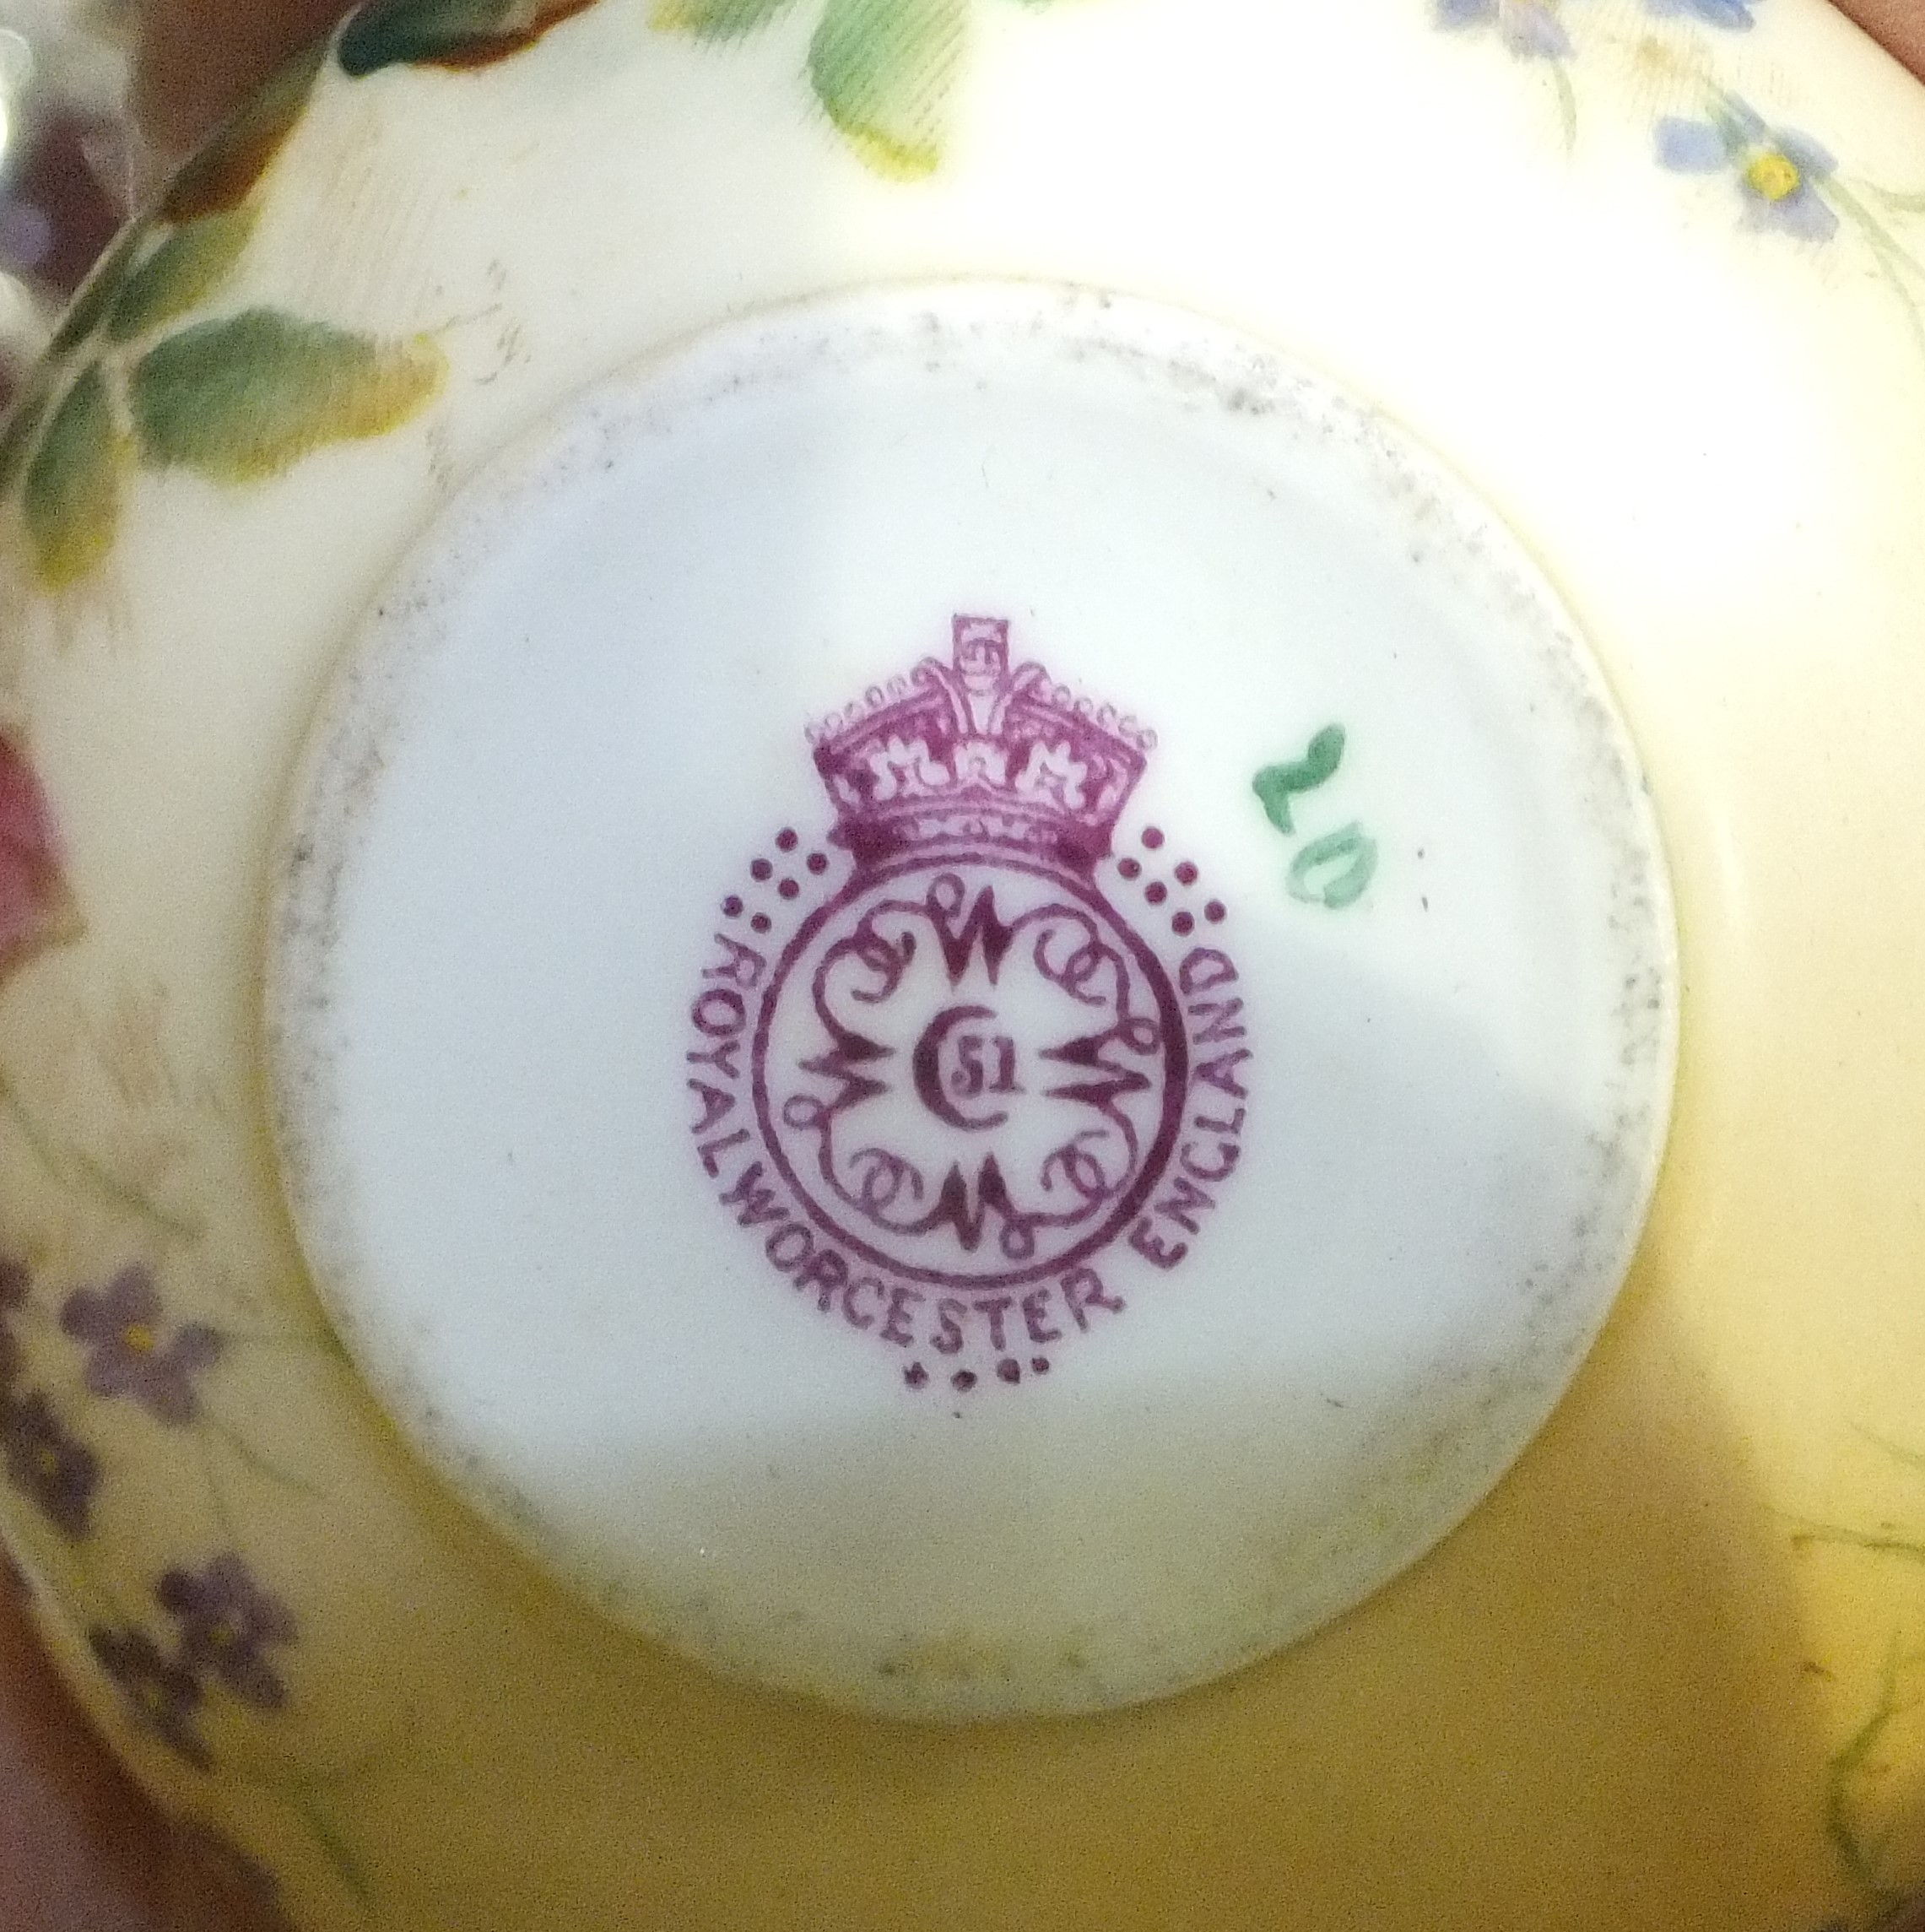 A Royal Worcester foliate-decorated blush pot and cover, a heavy cut-glass decanter, bowl, other - Image 2 of 6